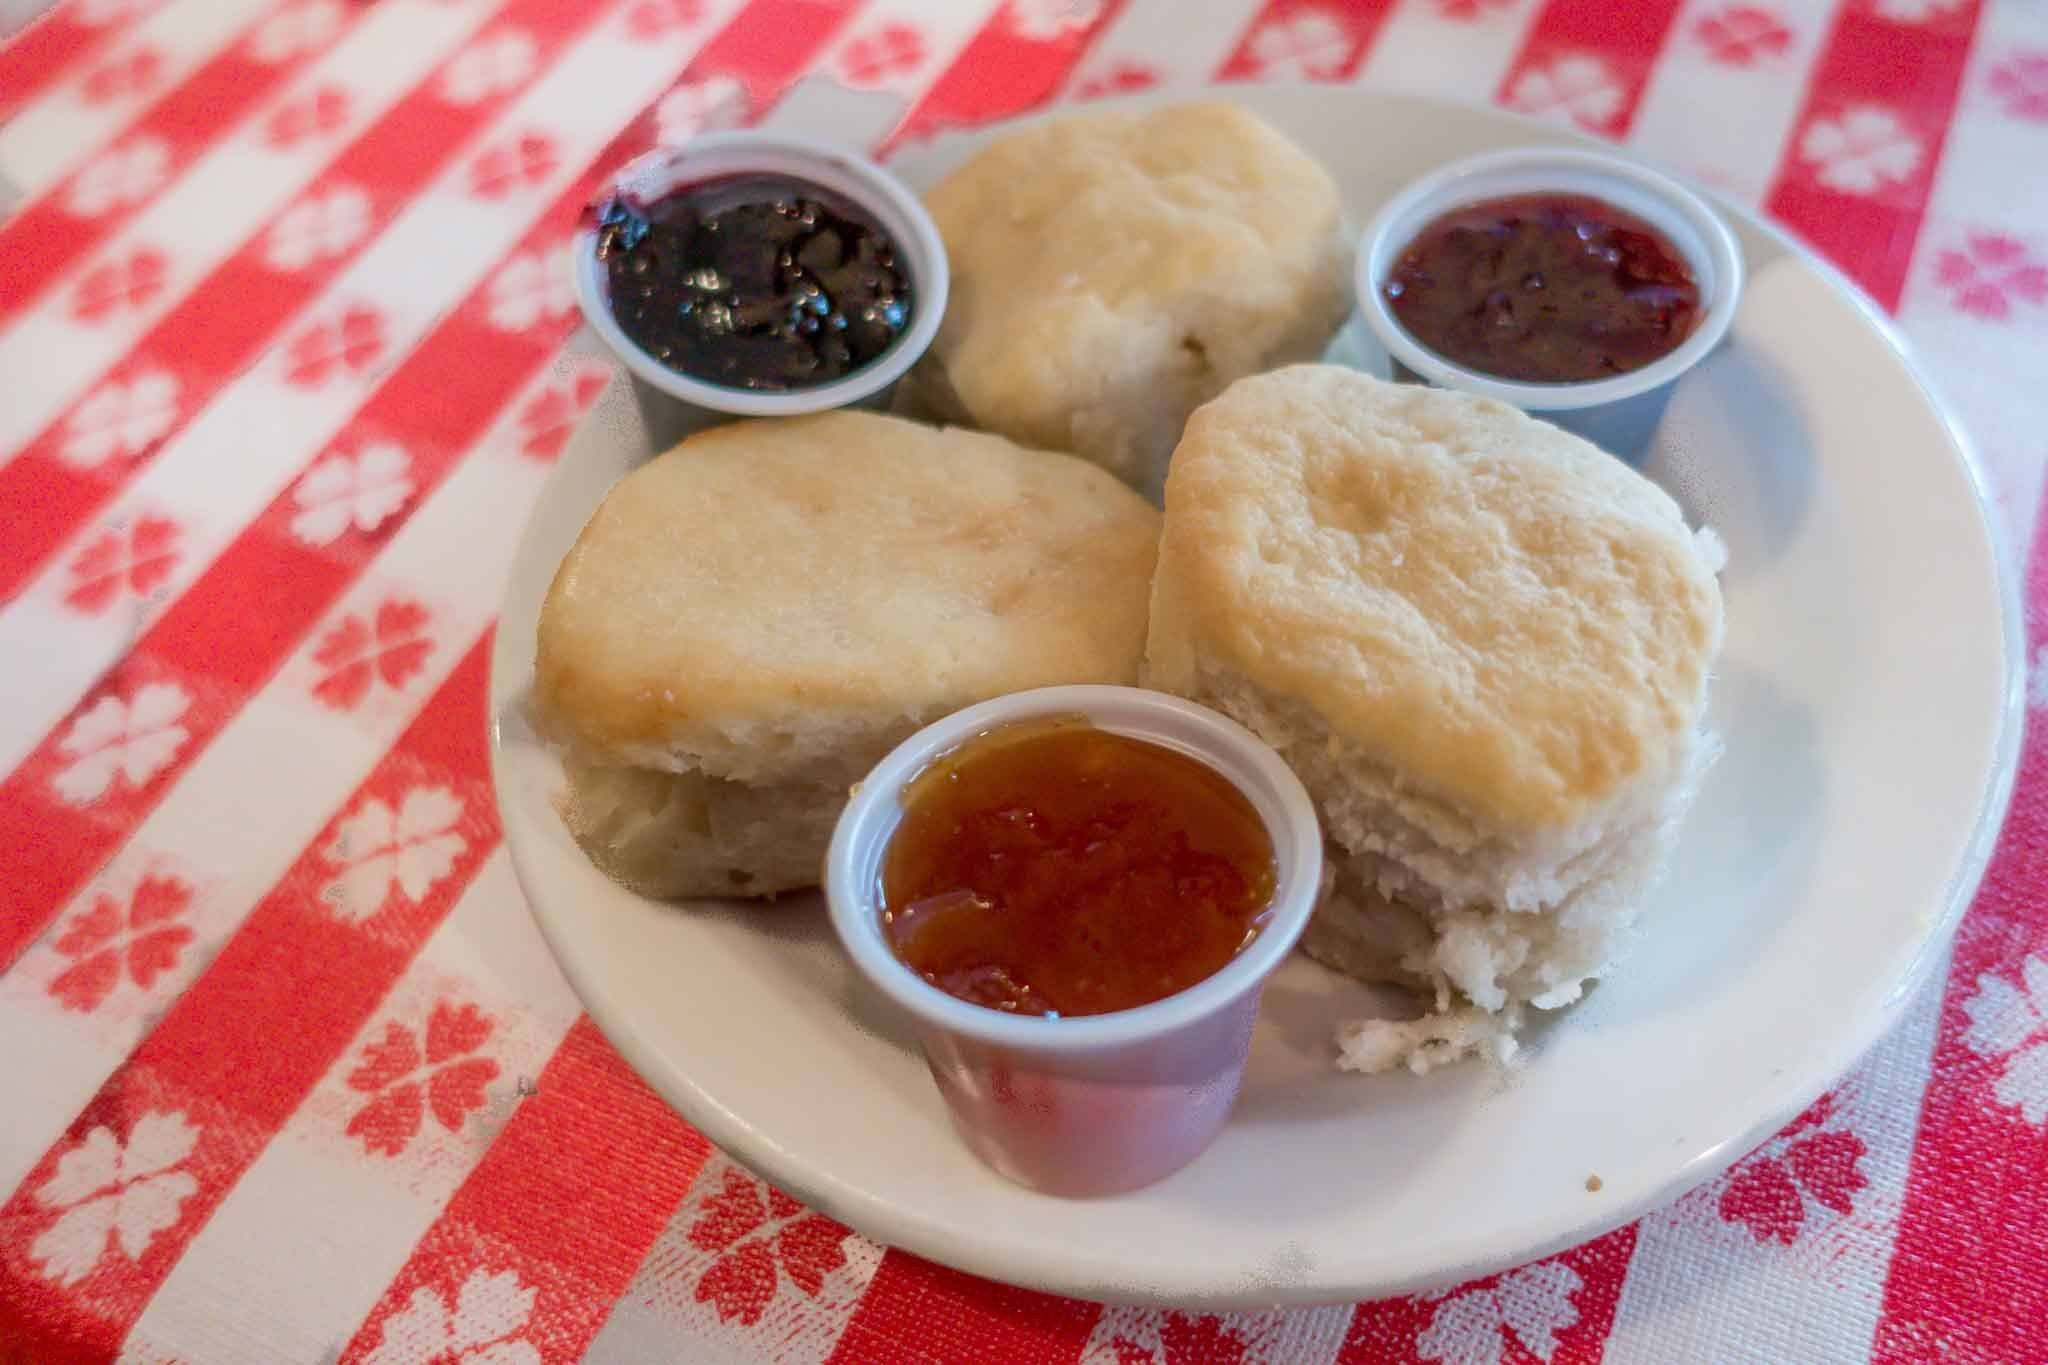 Biscuits on a plate with three kinds of preserves